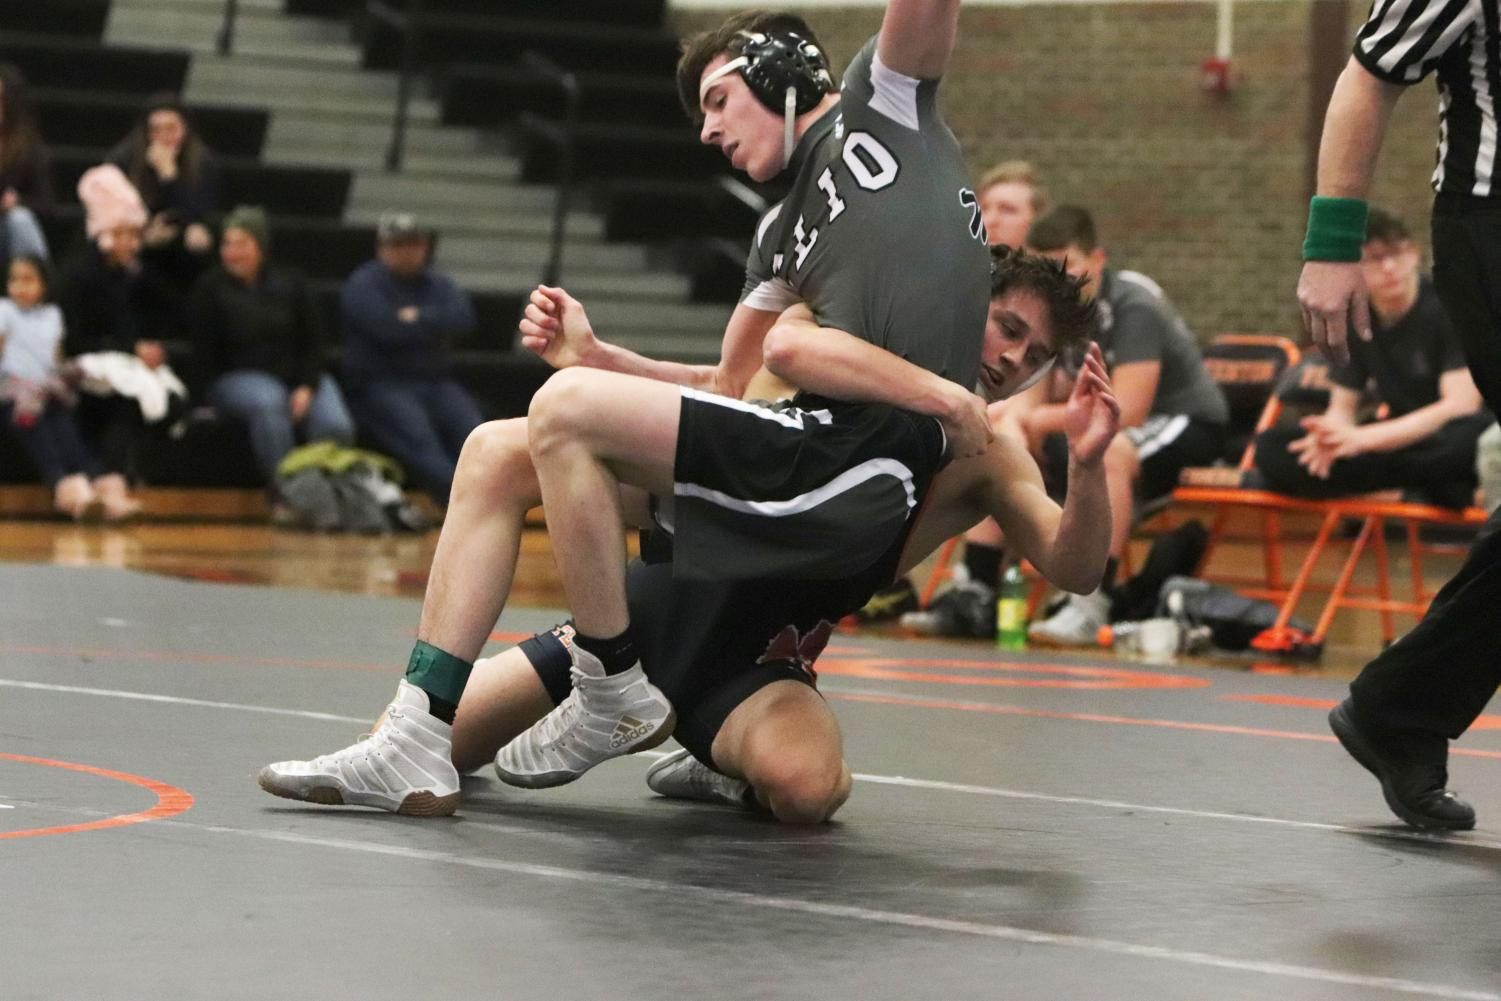 Junior Jayden Rittenbury takes down a Cilo student for his team on January 9. On Wednesday's meet Rittenbury placed 51 to 44.